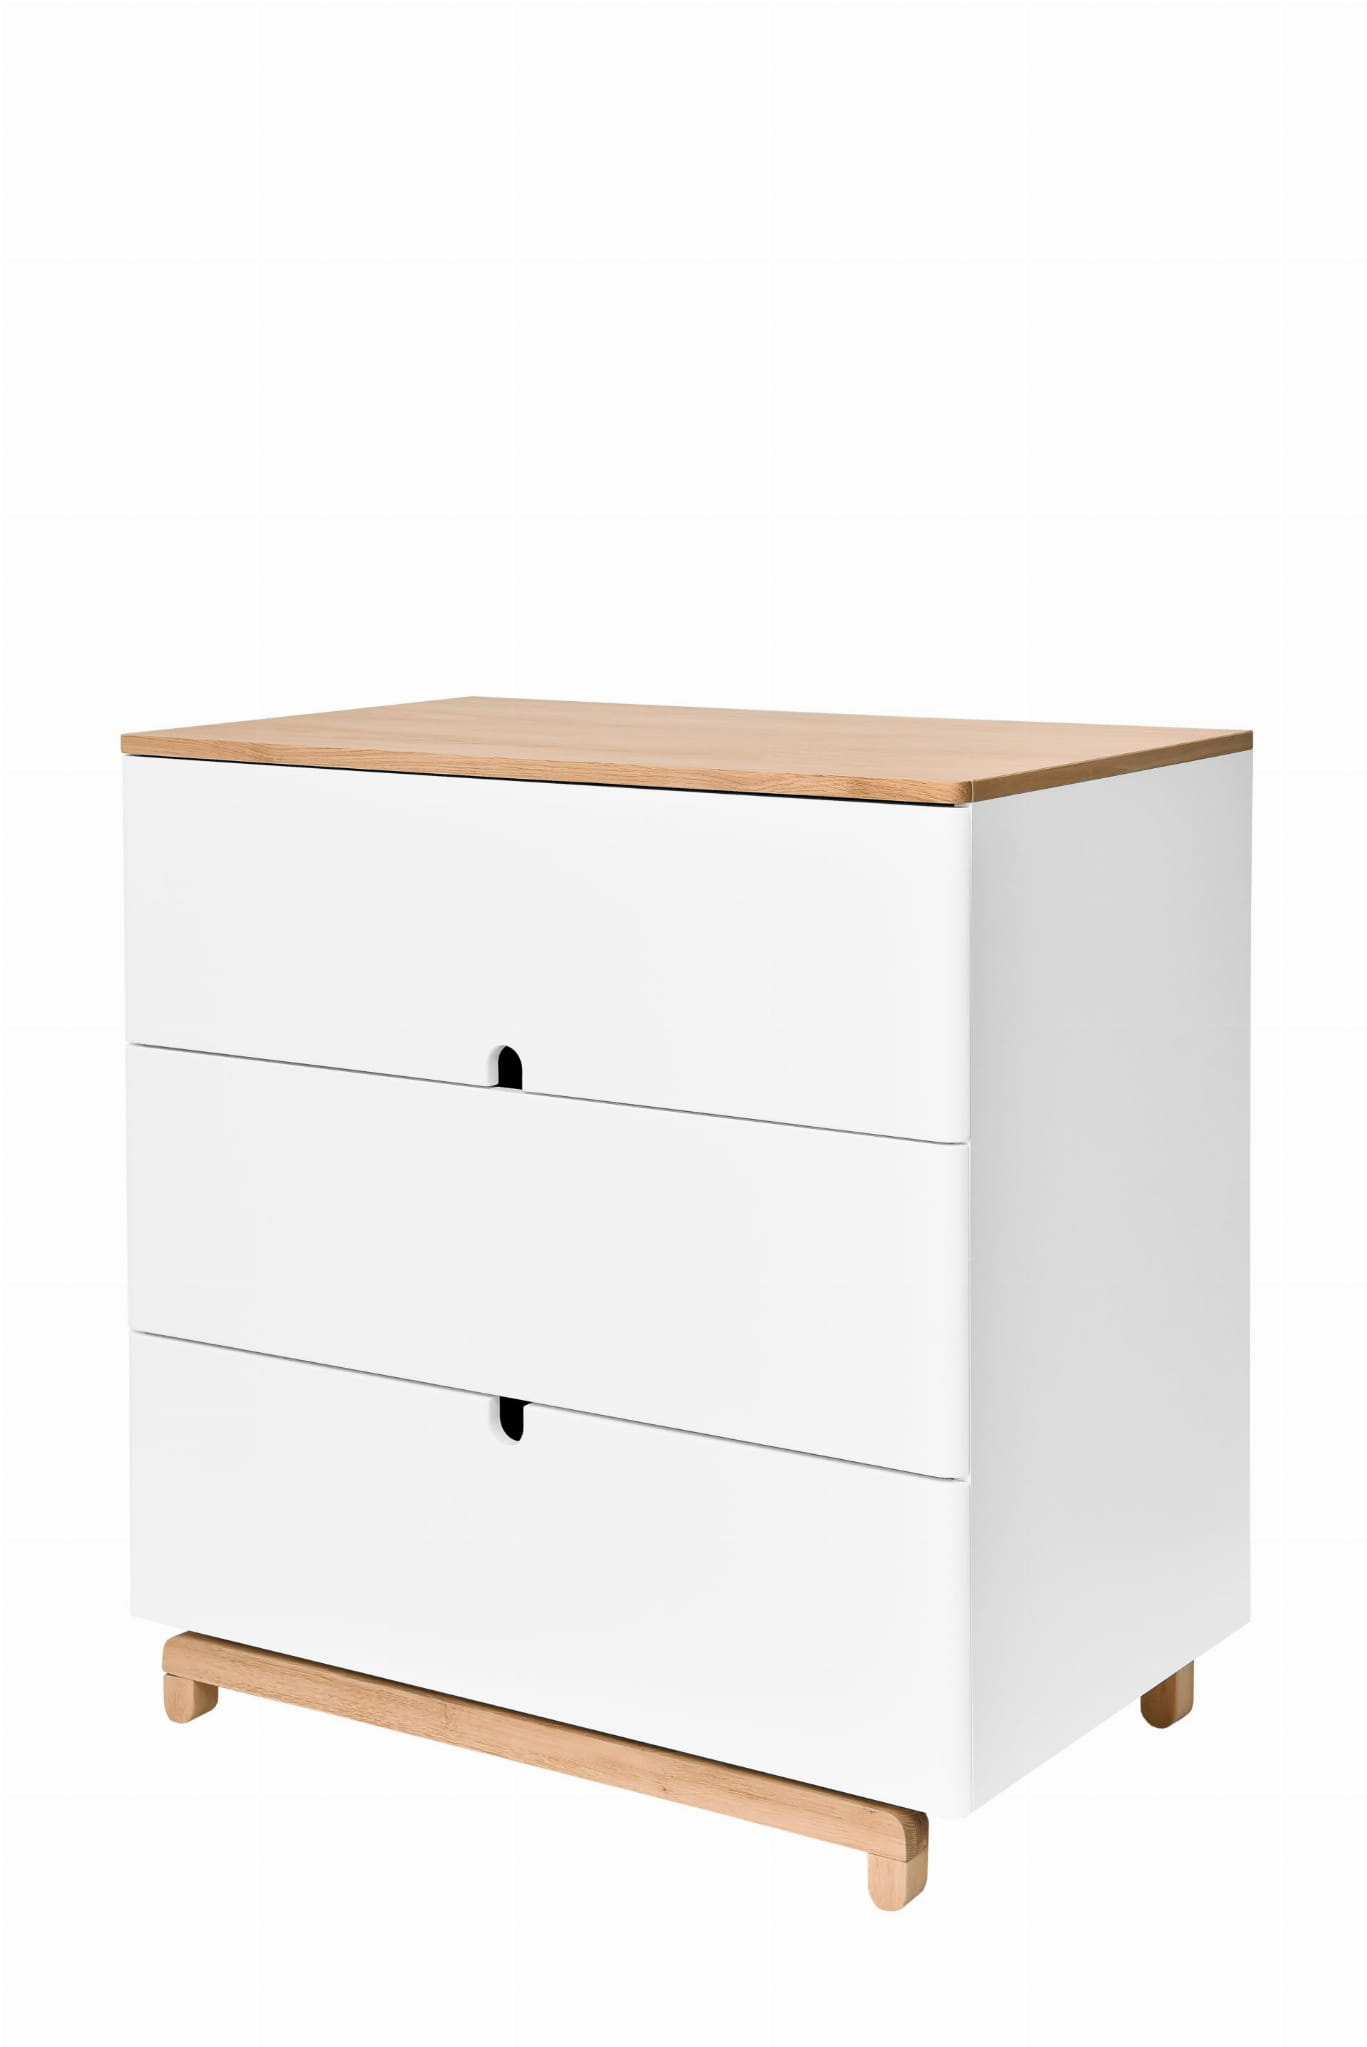 Nomi_chest_of_drawers_02.jpg